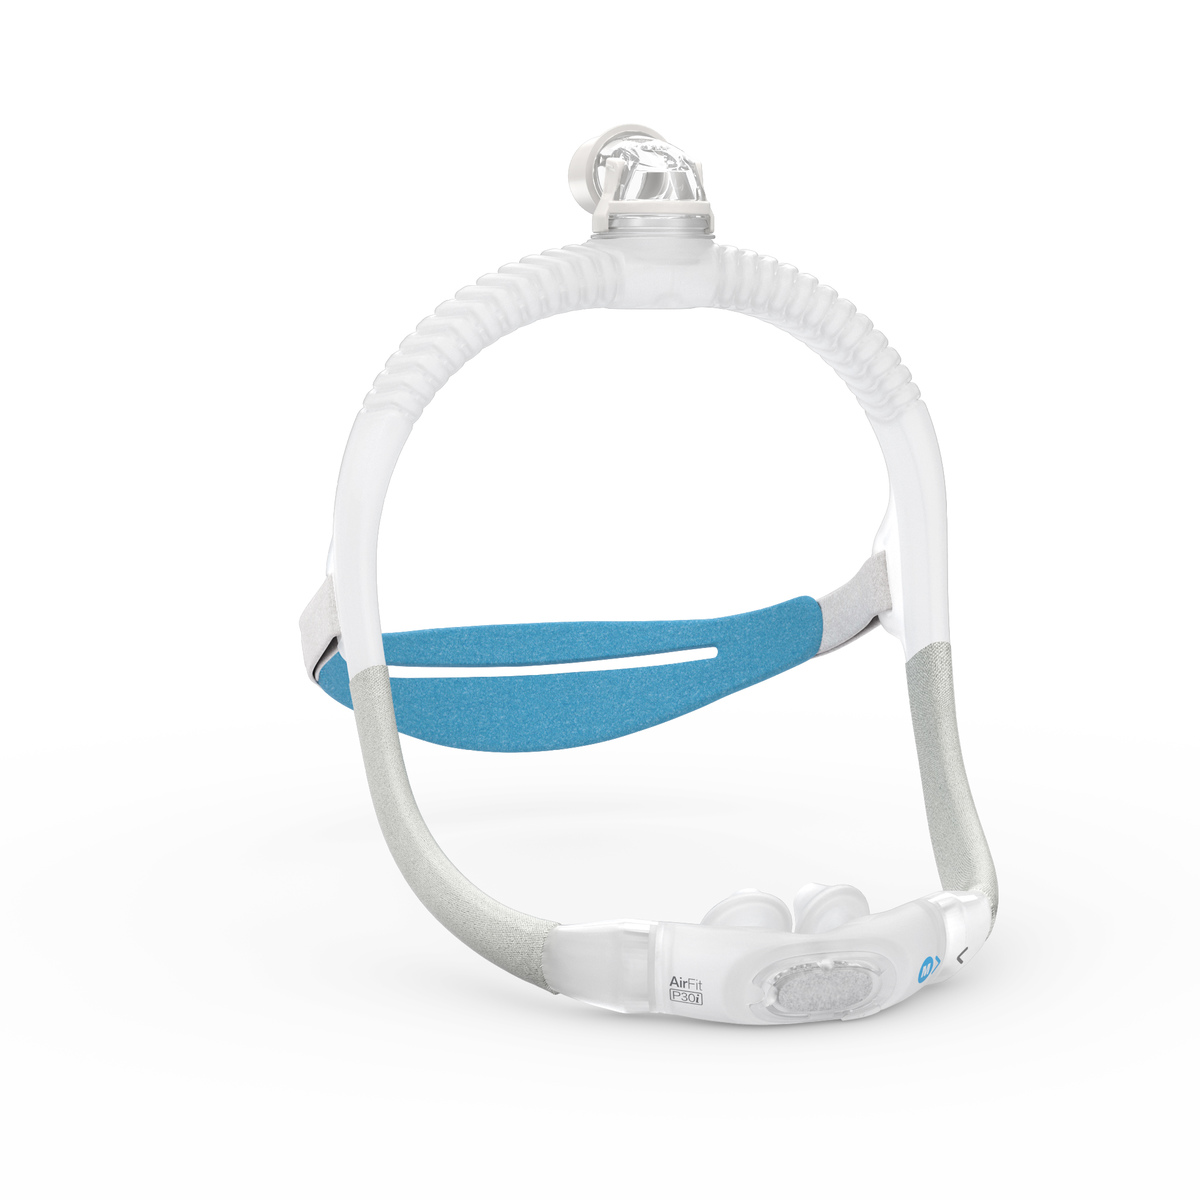 AirFit P30i Nasal Mask with Headgear Starter Kit Includes Sm, Md & Lg Pillow Cushions